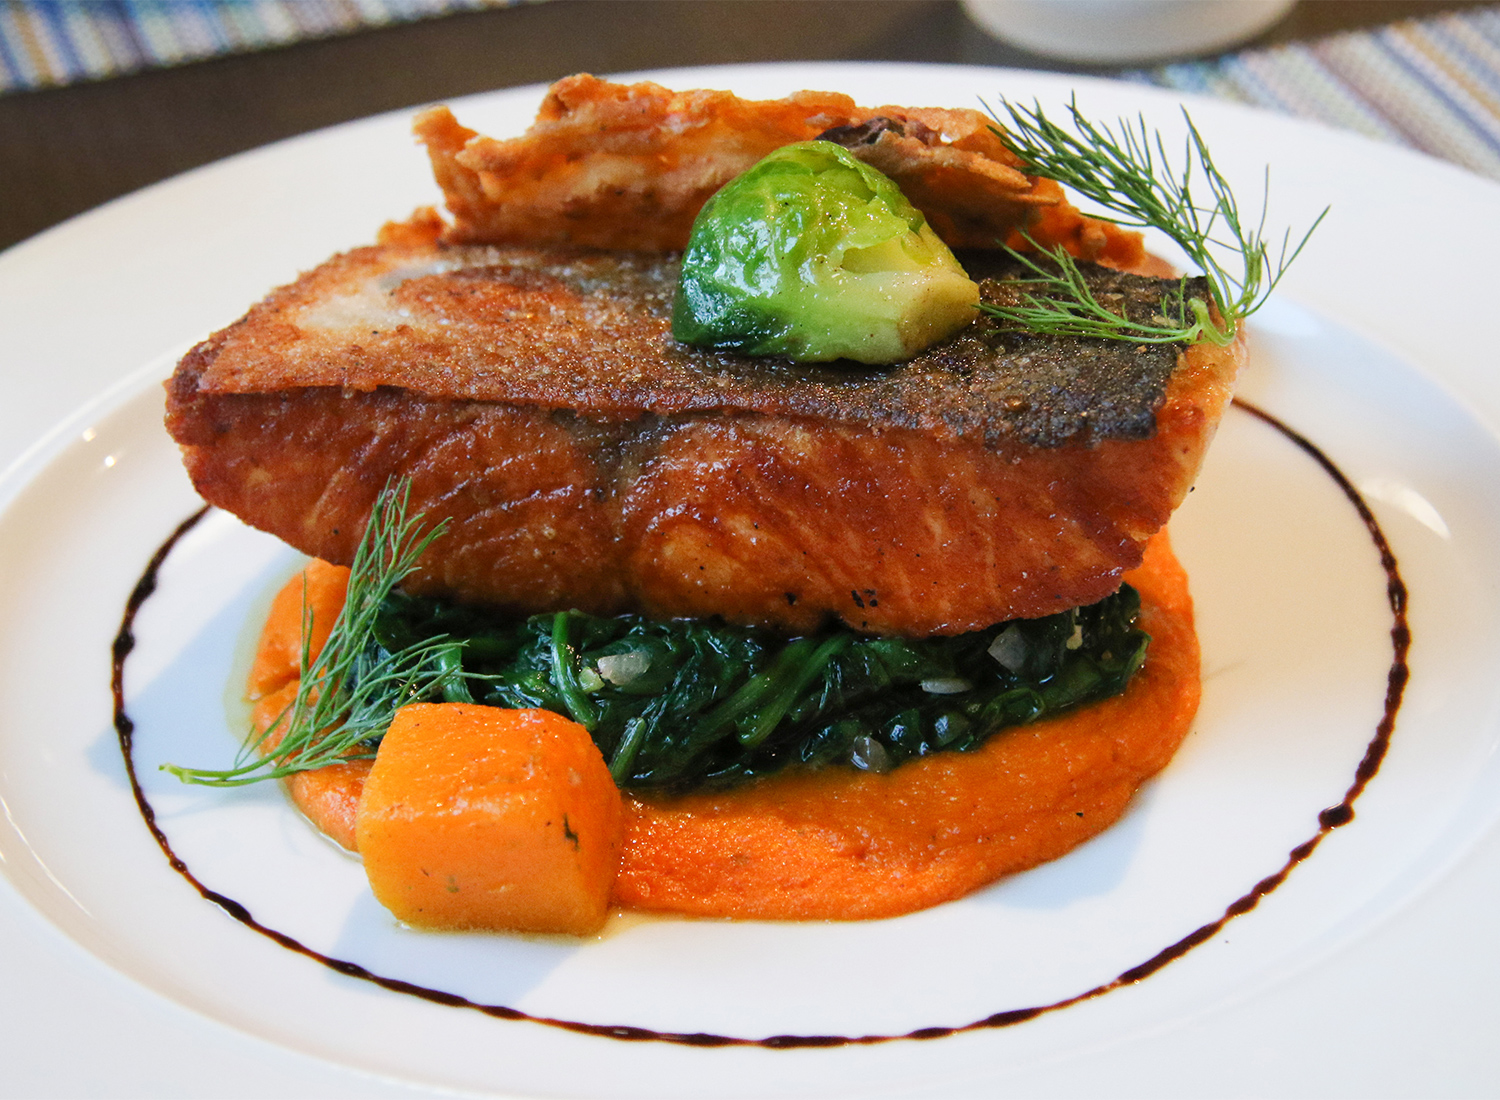 Salmon with carrot puree at Tisza Bistro in Windsor. Heather Irwin/PD